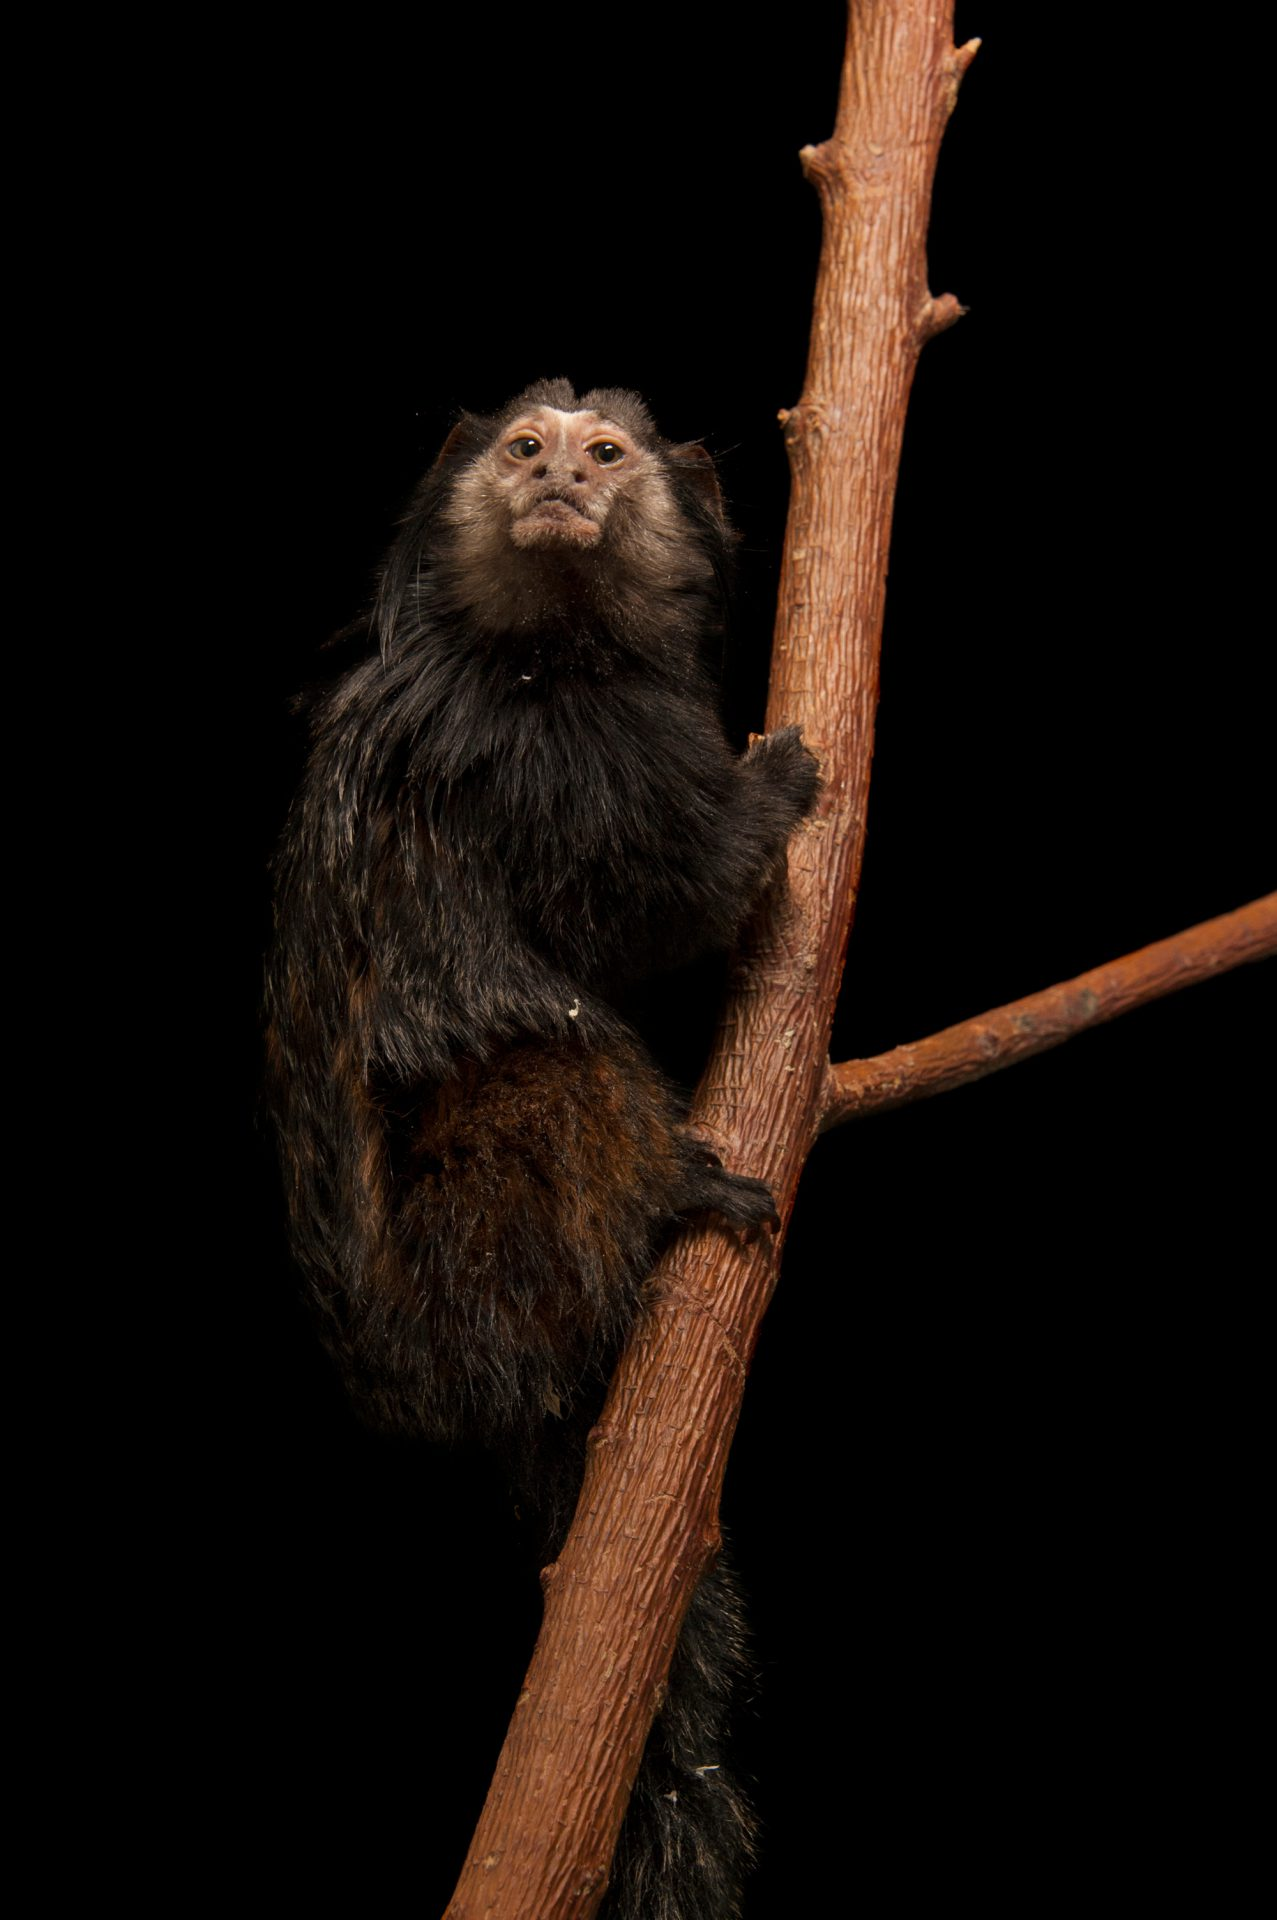 Wied's marmoset (aka Kuhlii's marmoset) (Callithrix kuhlii) at the Lincoln Childrens Zoo.